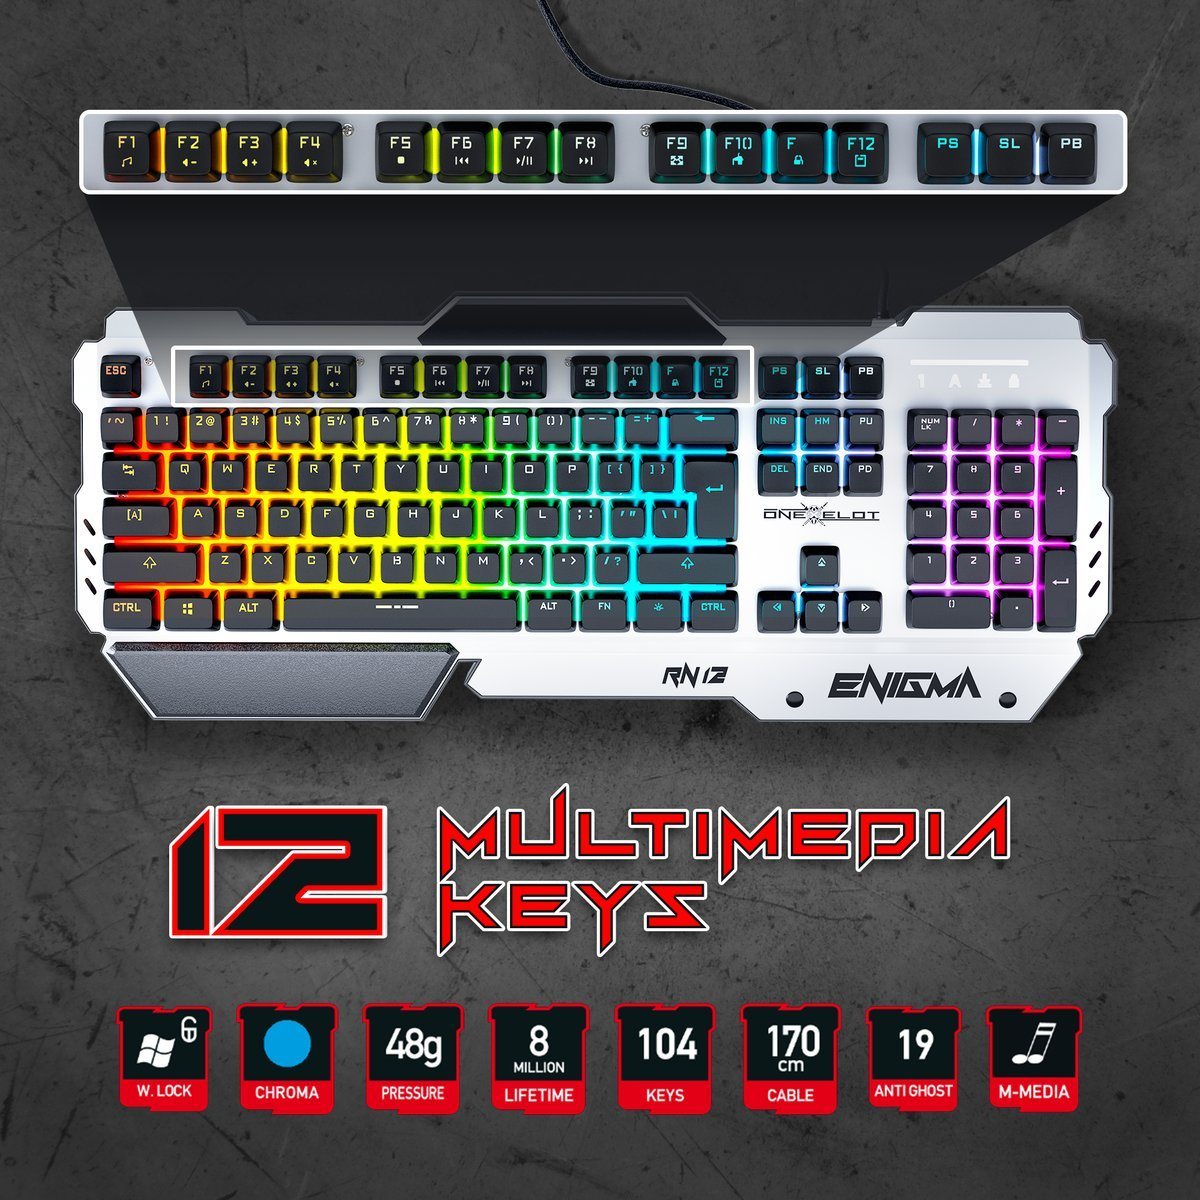 ONEXELOT Aluminum gaming keyboard, USB wired RGB backlit Revolutionary semi mechanical keyboard mod ENIGMA by ONEXELOT (Image #5)